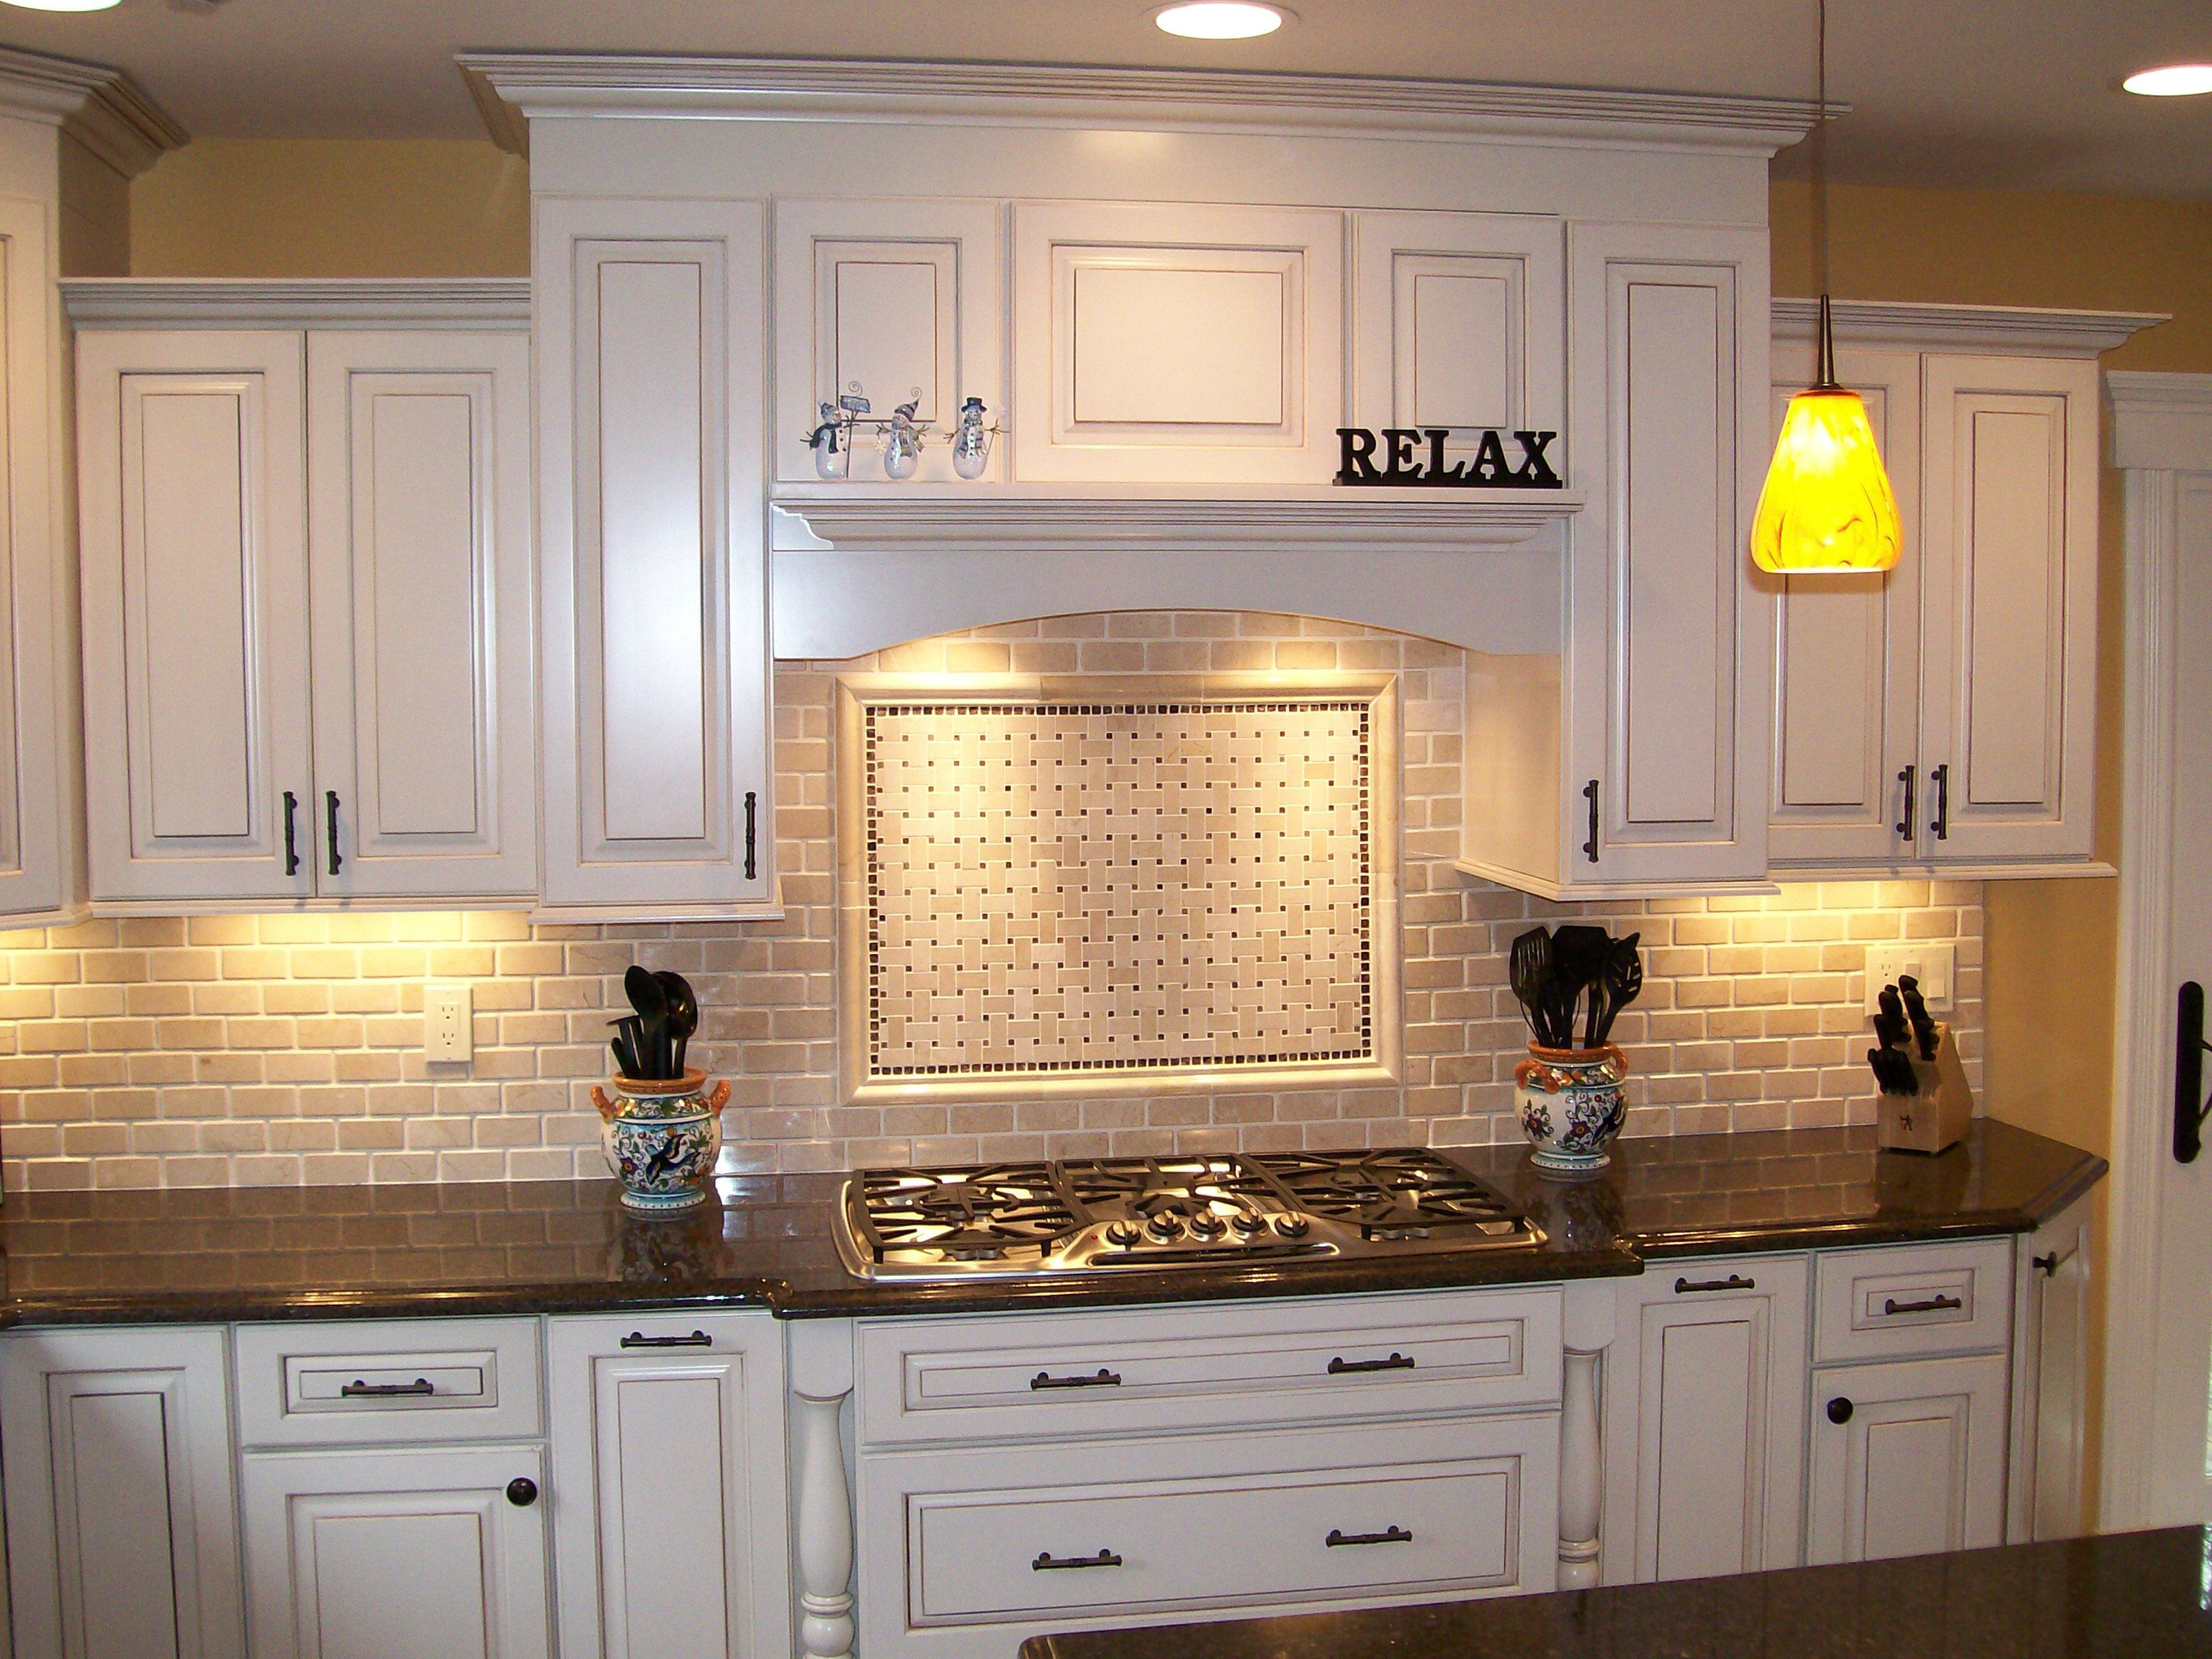 Beige Kitchen Backsplash Google Search Backsplash For White Cabinets White Brick Backsplash Brick Kitchen